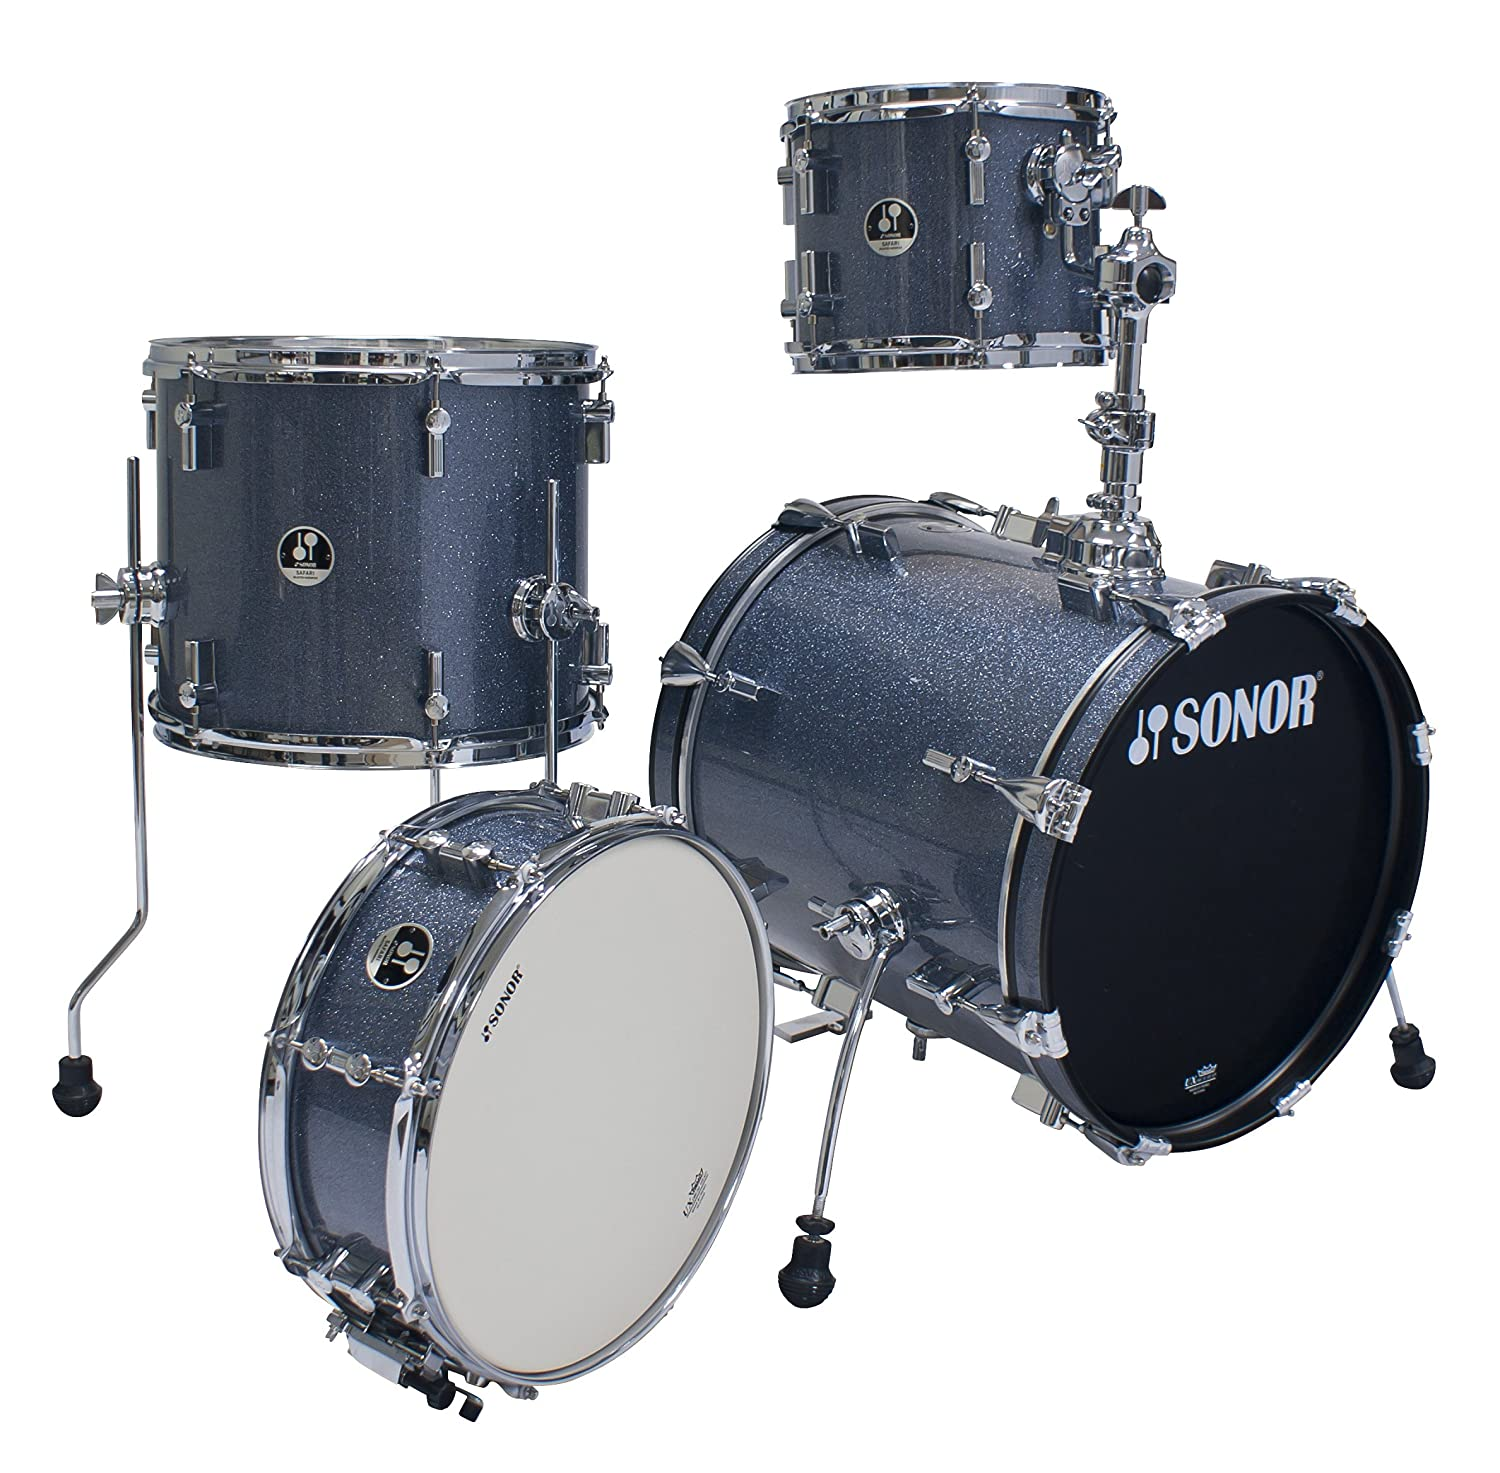 Sonor Drums SSE 12